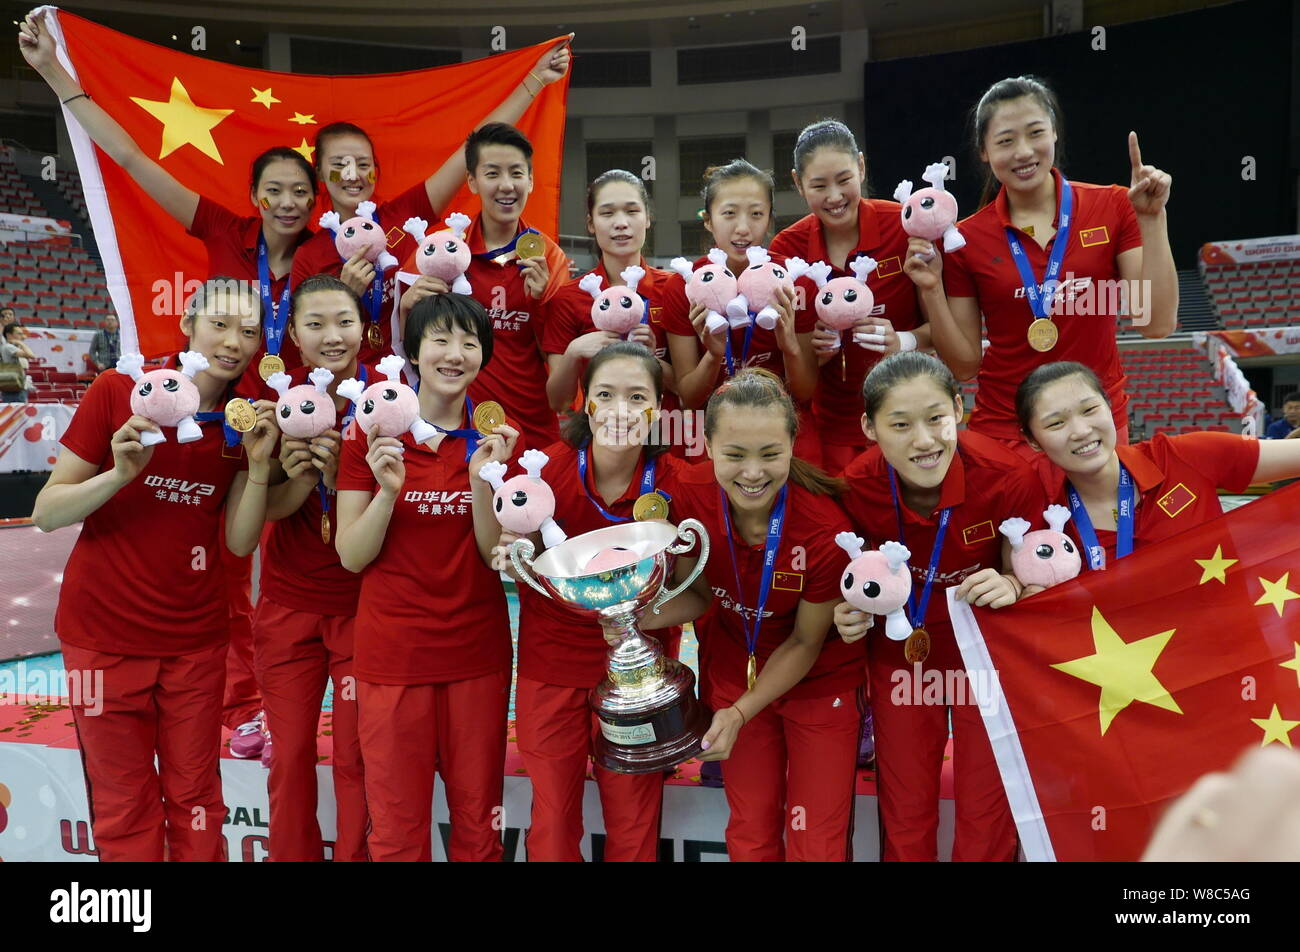 Players Of China Women S National Volleyball Team Pose During The Award Ceremony Of The 2015 Women S Volleyball World Cup In Nagoya Japan 6 Septembe Stock Photo Alamy